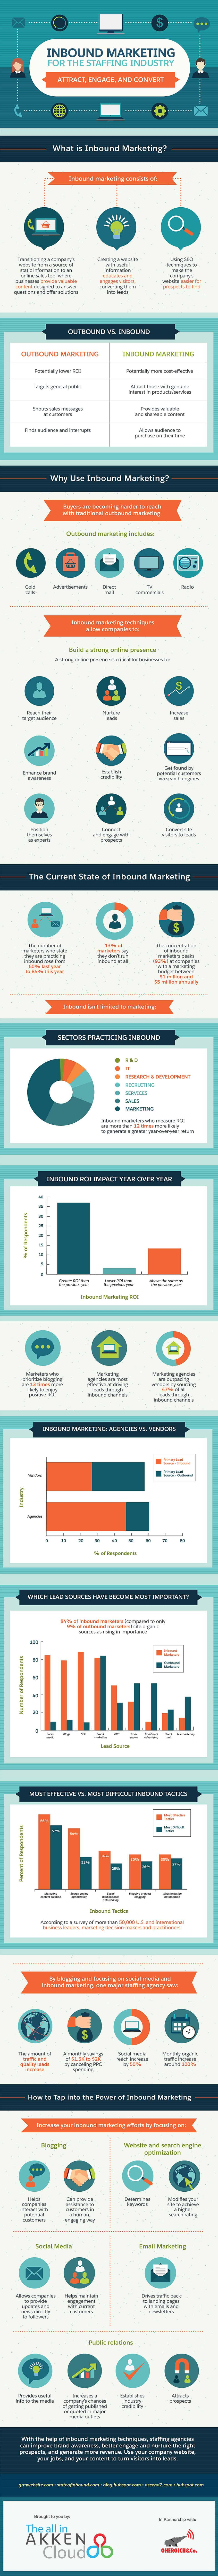 Inbound Marketing for the Staffing Industry: Attract, Engage, and Convert